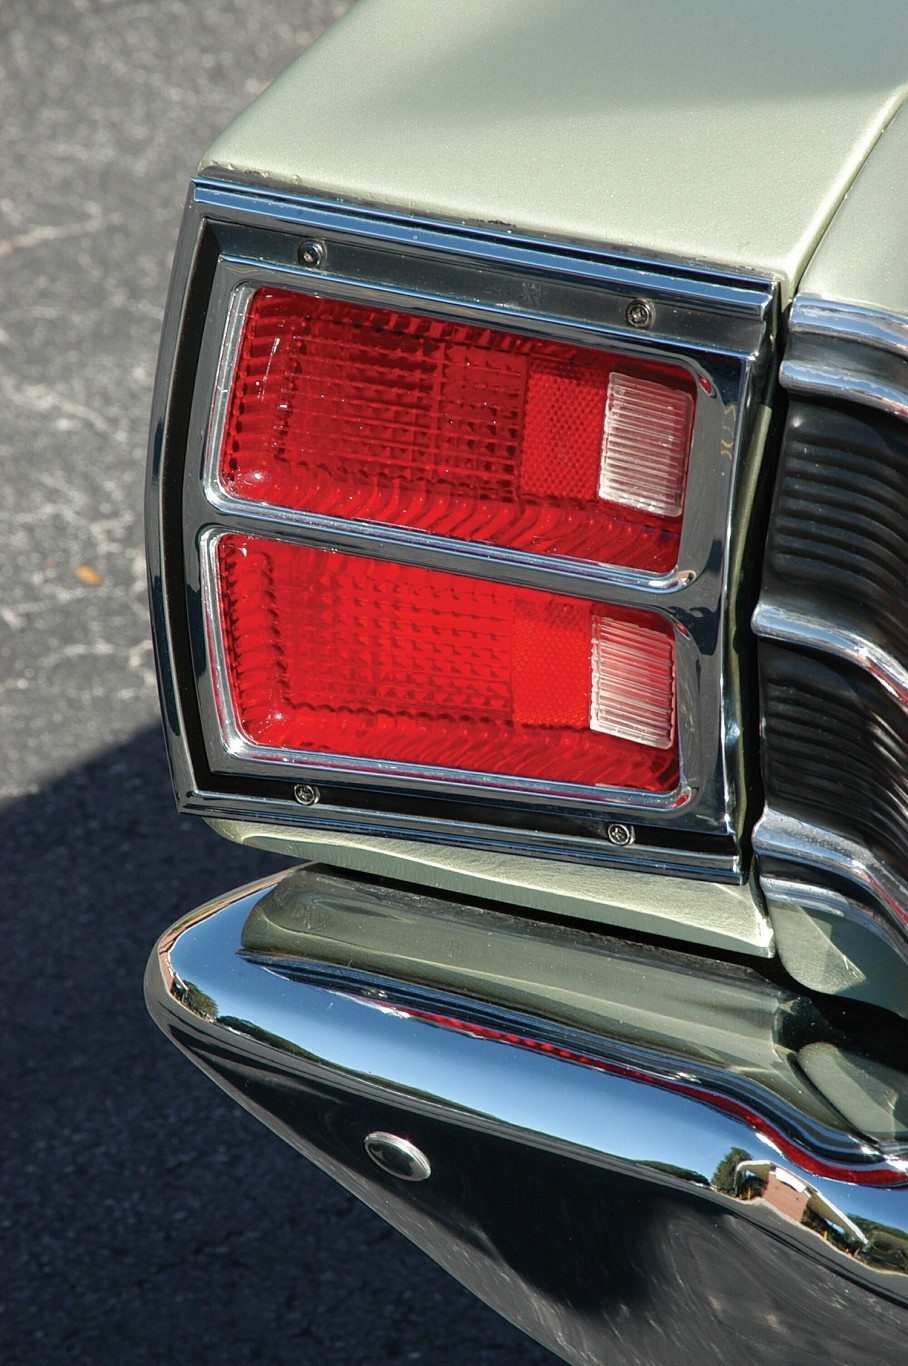 1969 Dodge Dart 340 GTS Rear Light